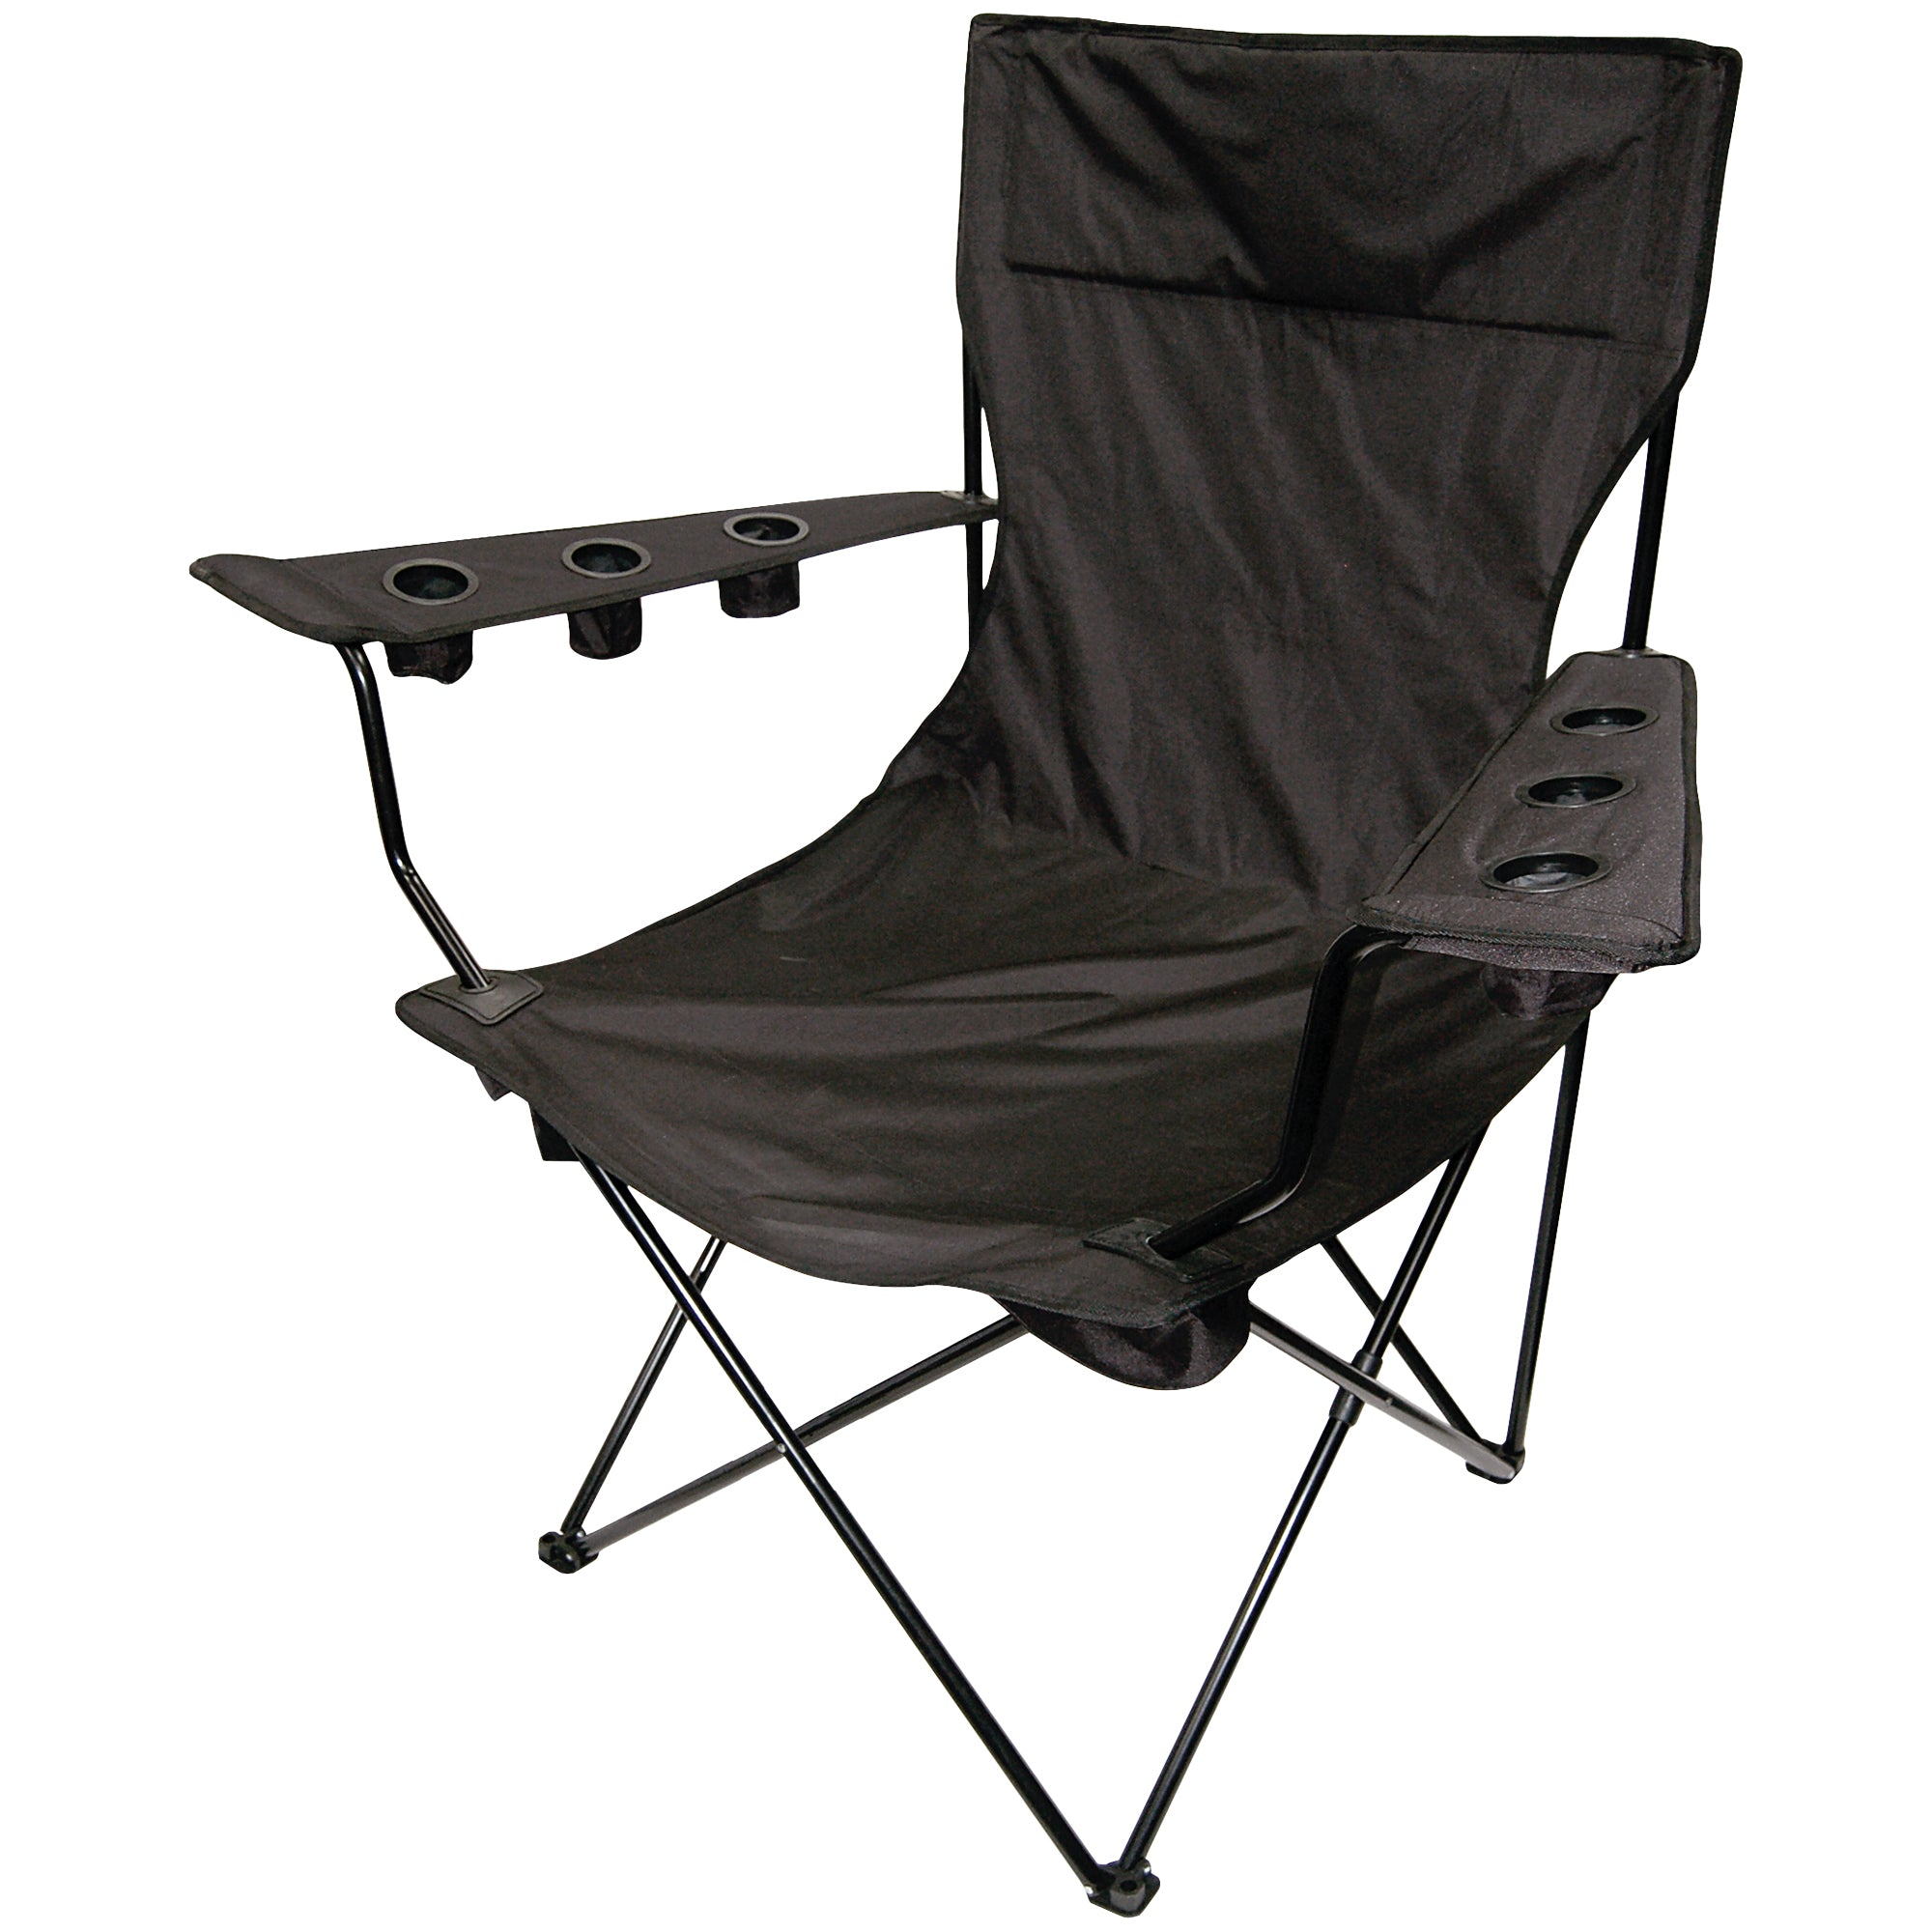 Giant Kingpin Folding Chair Black